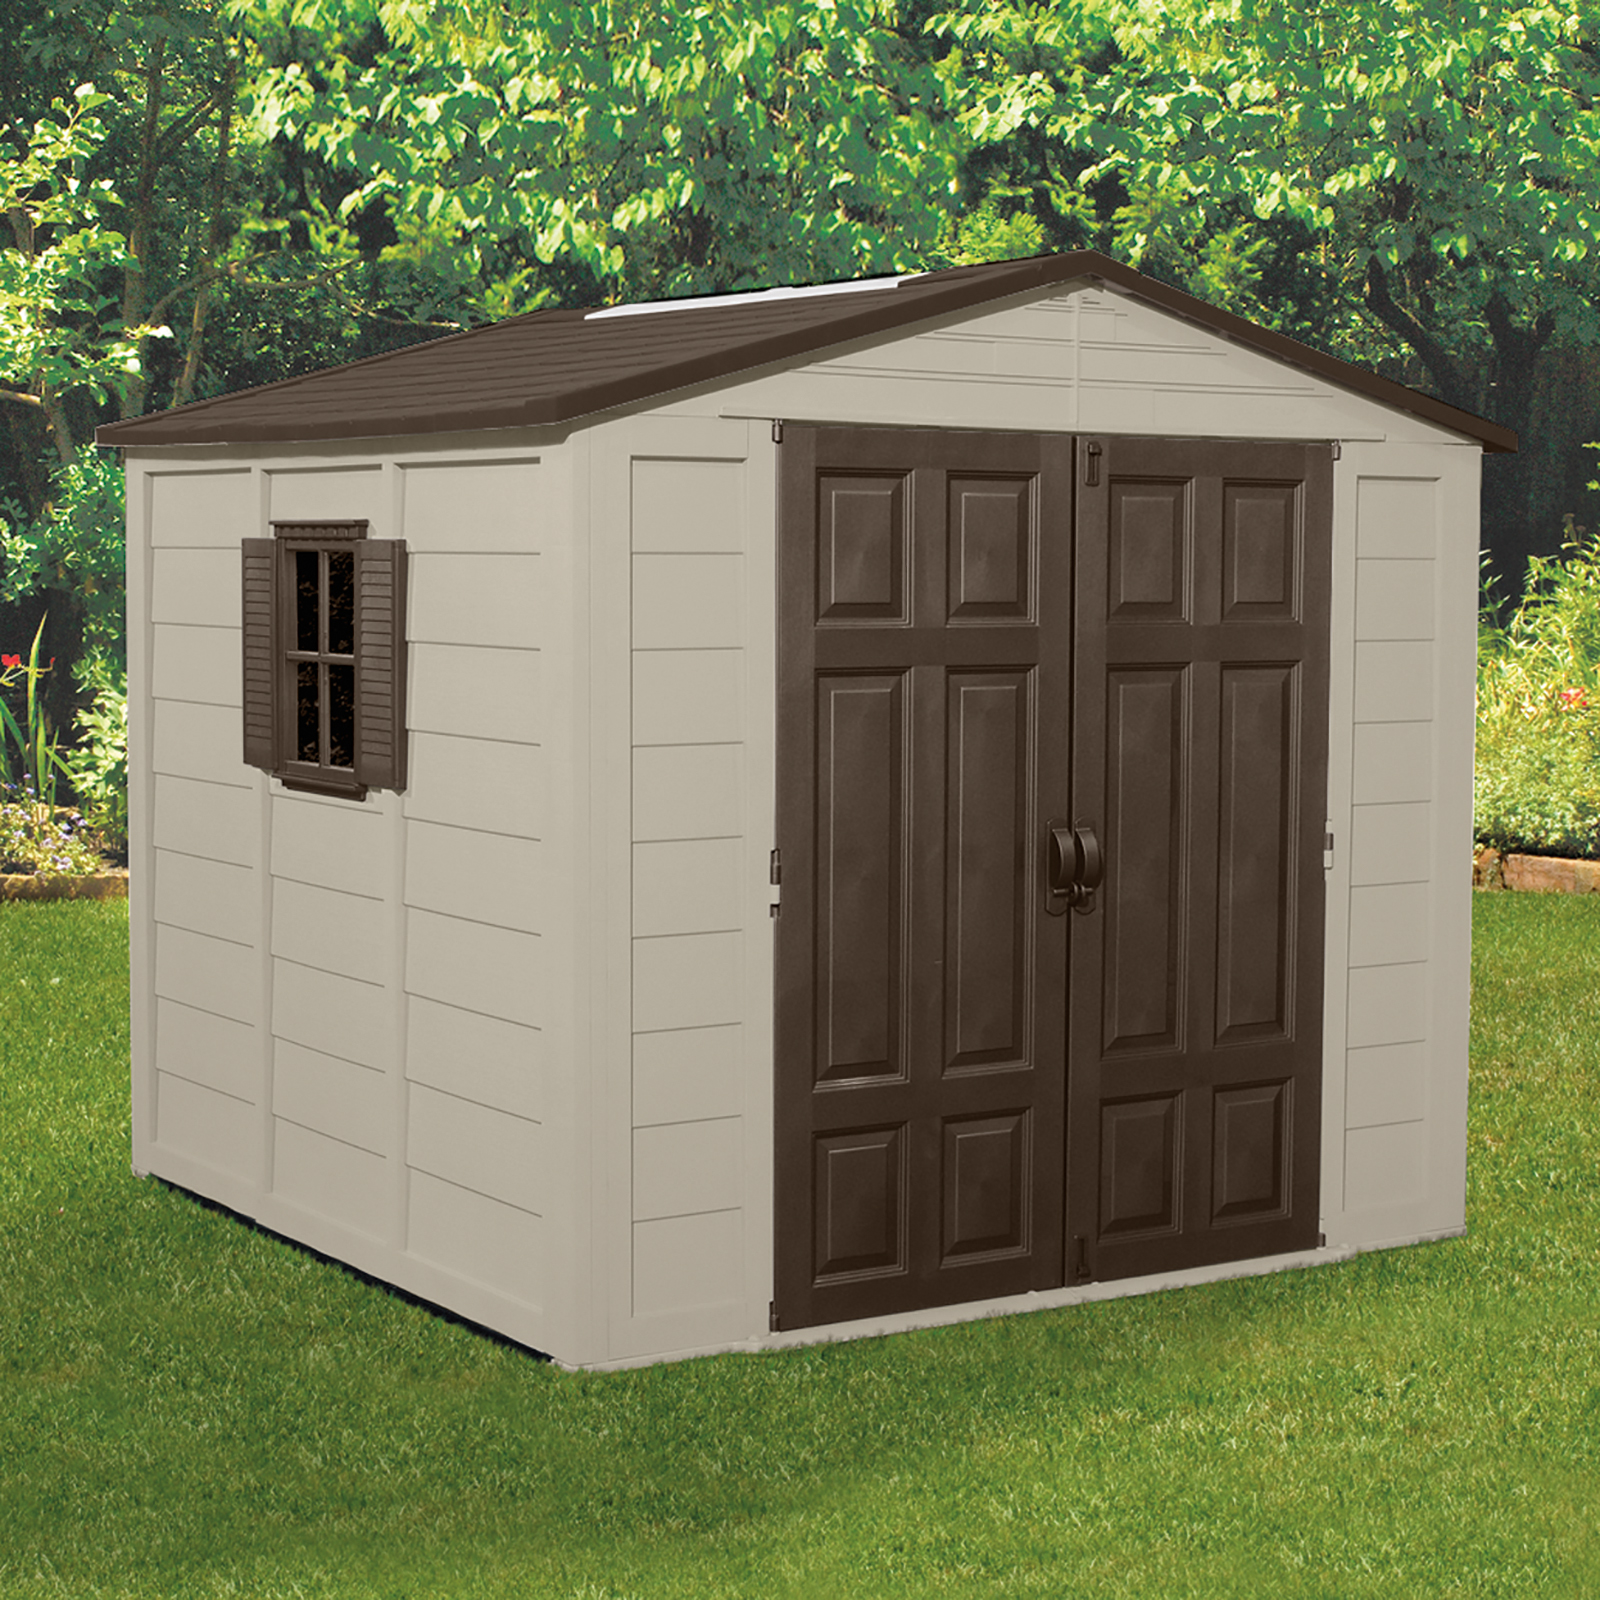 Suncast Storage Building (7-1/2 ft. x 7-1/2 ft.)